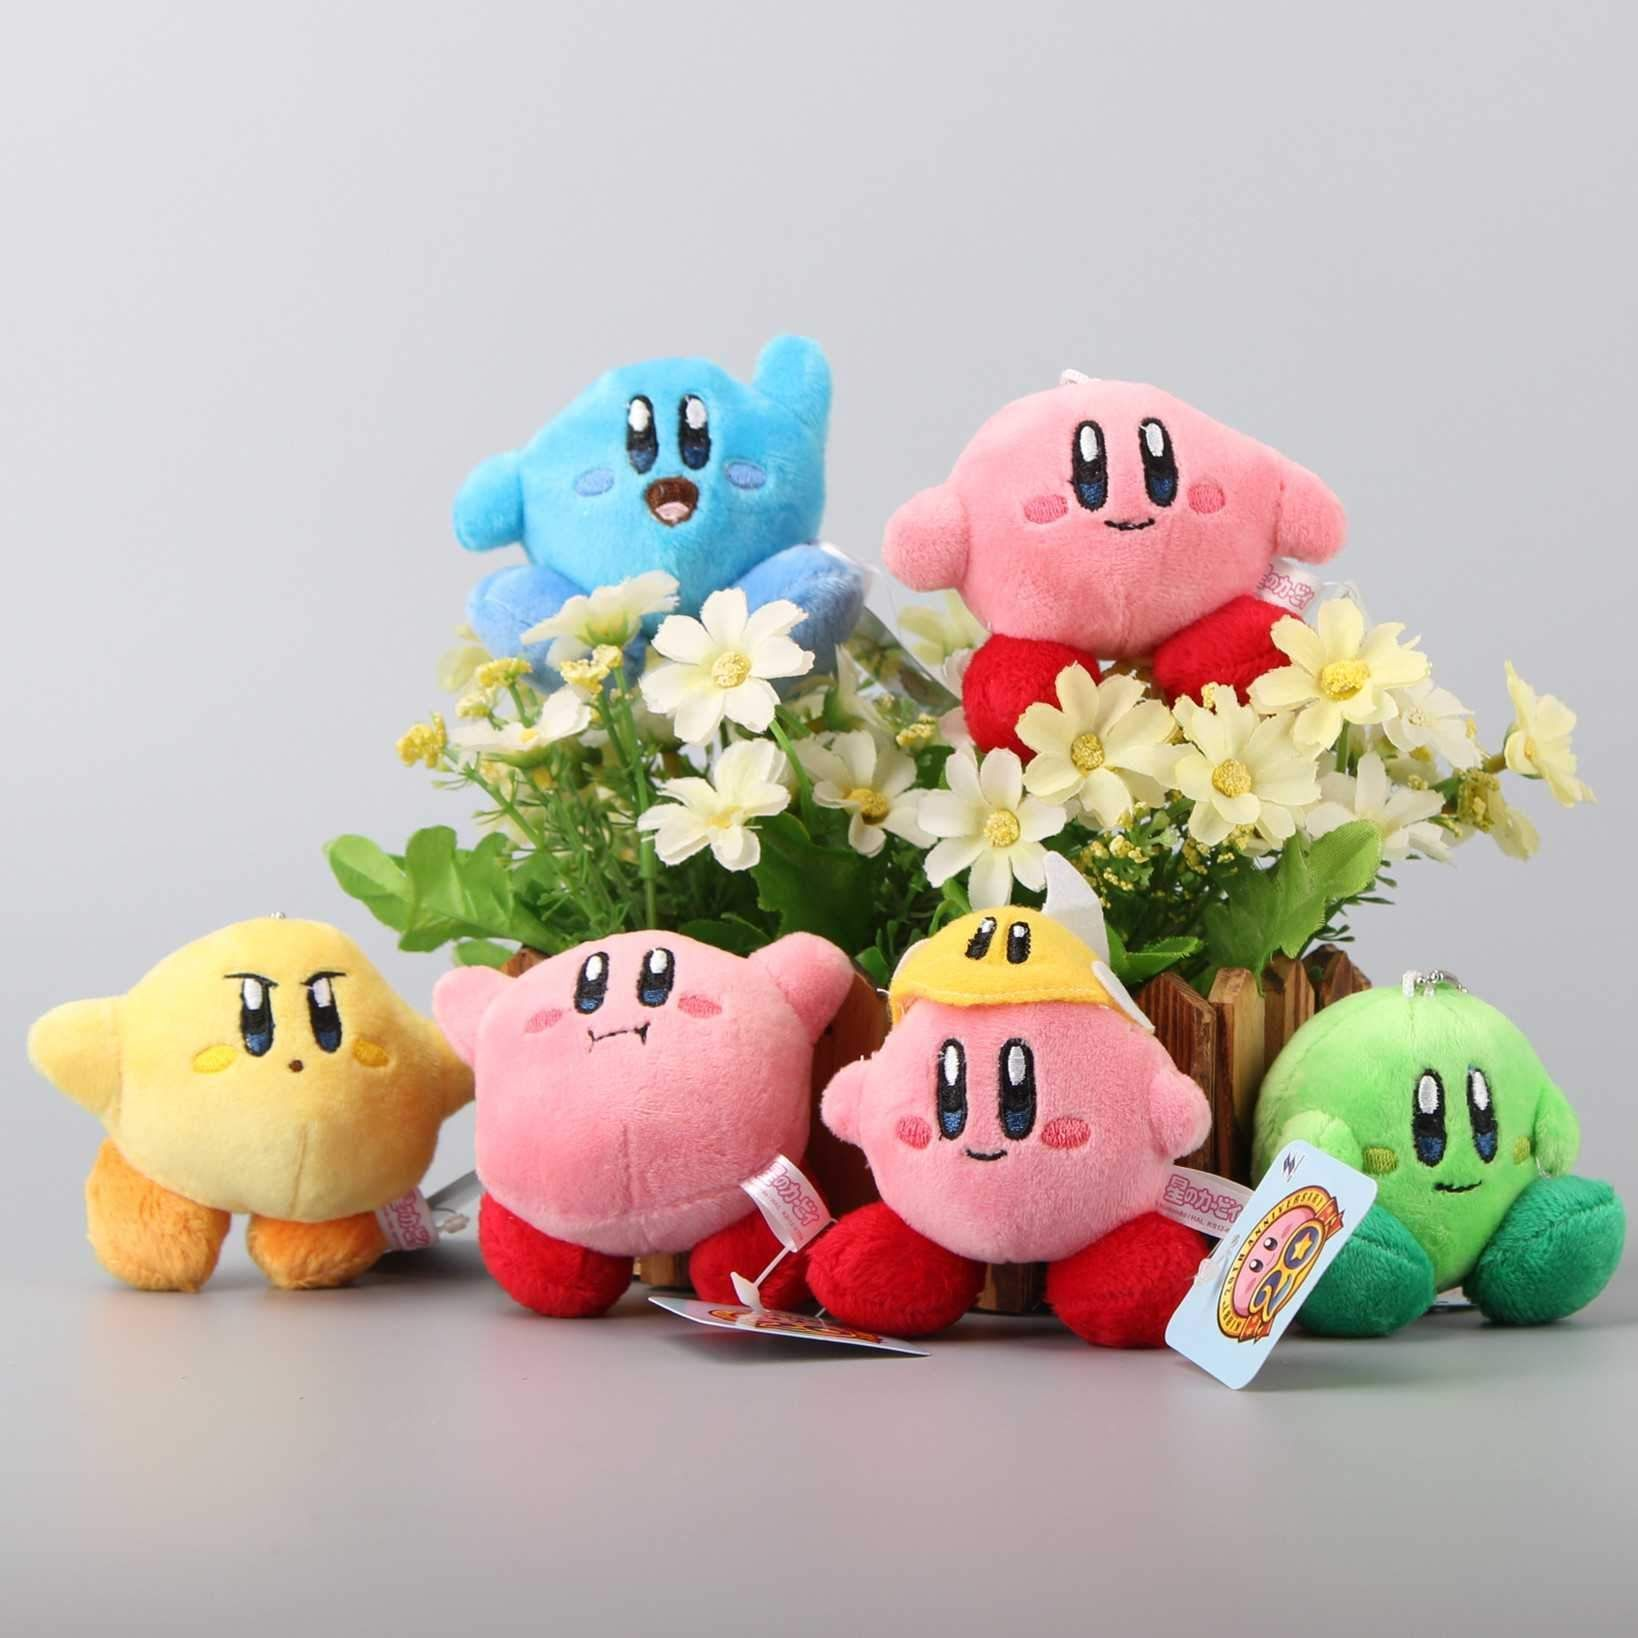 pcsset star kirby plush toys cute keychain popopo small pendant